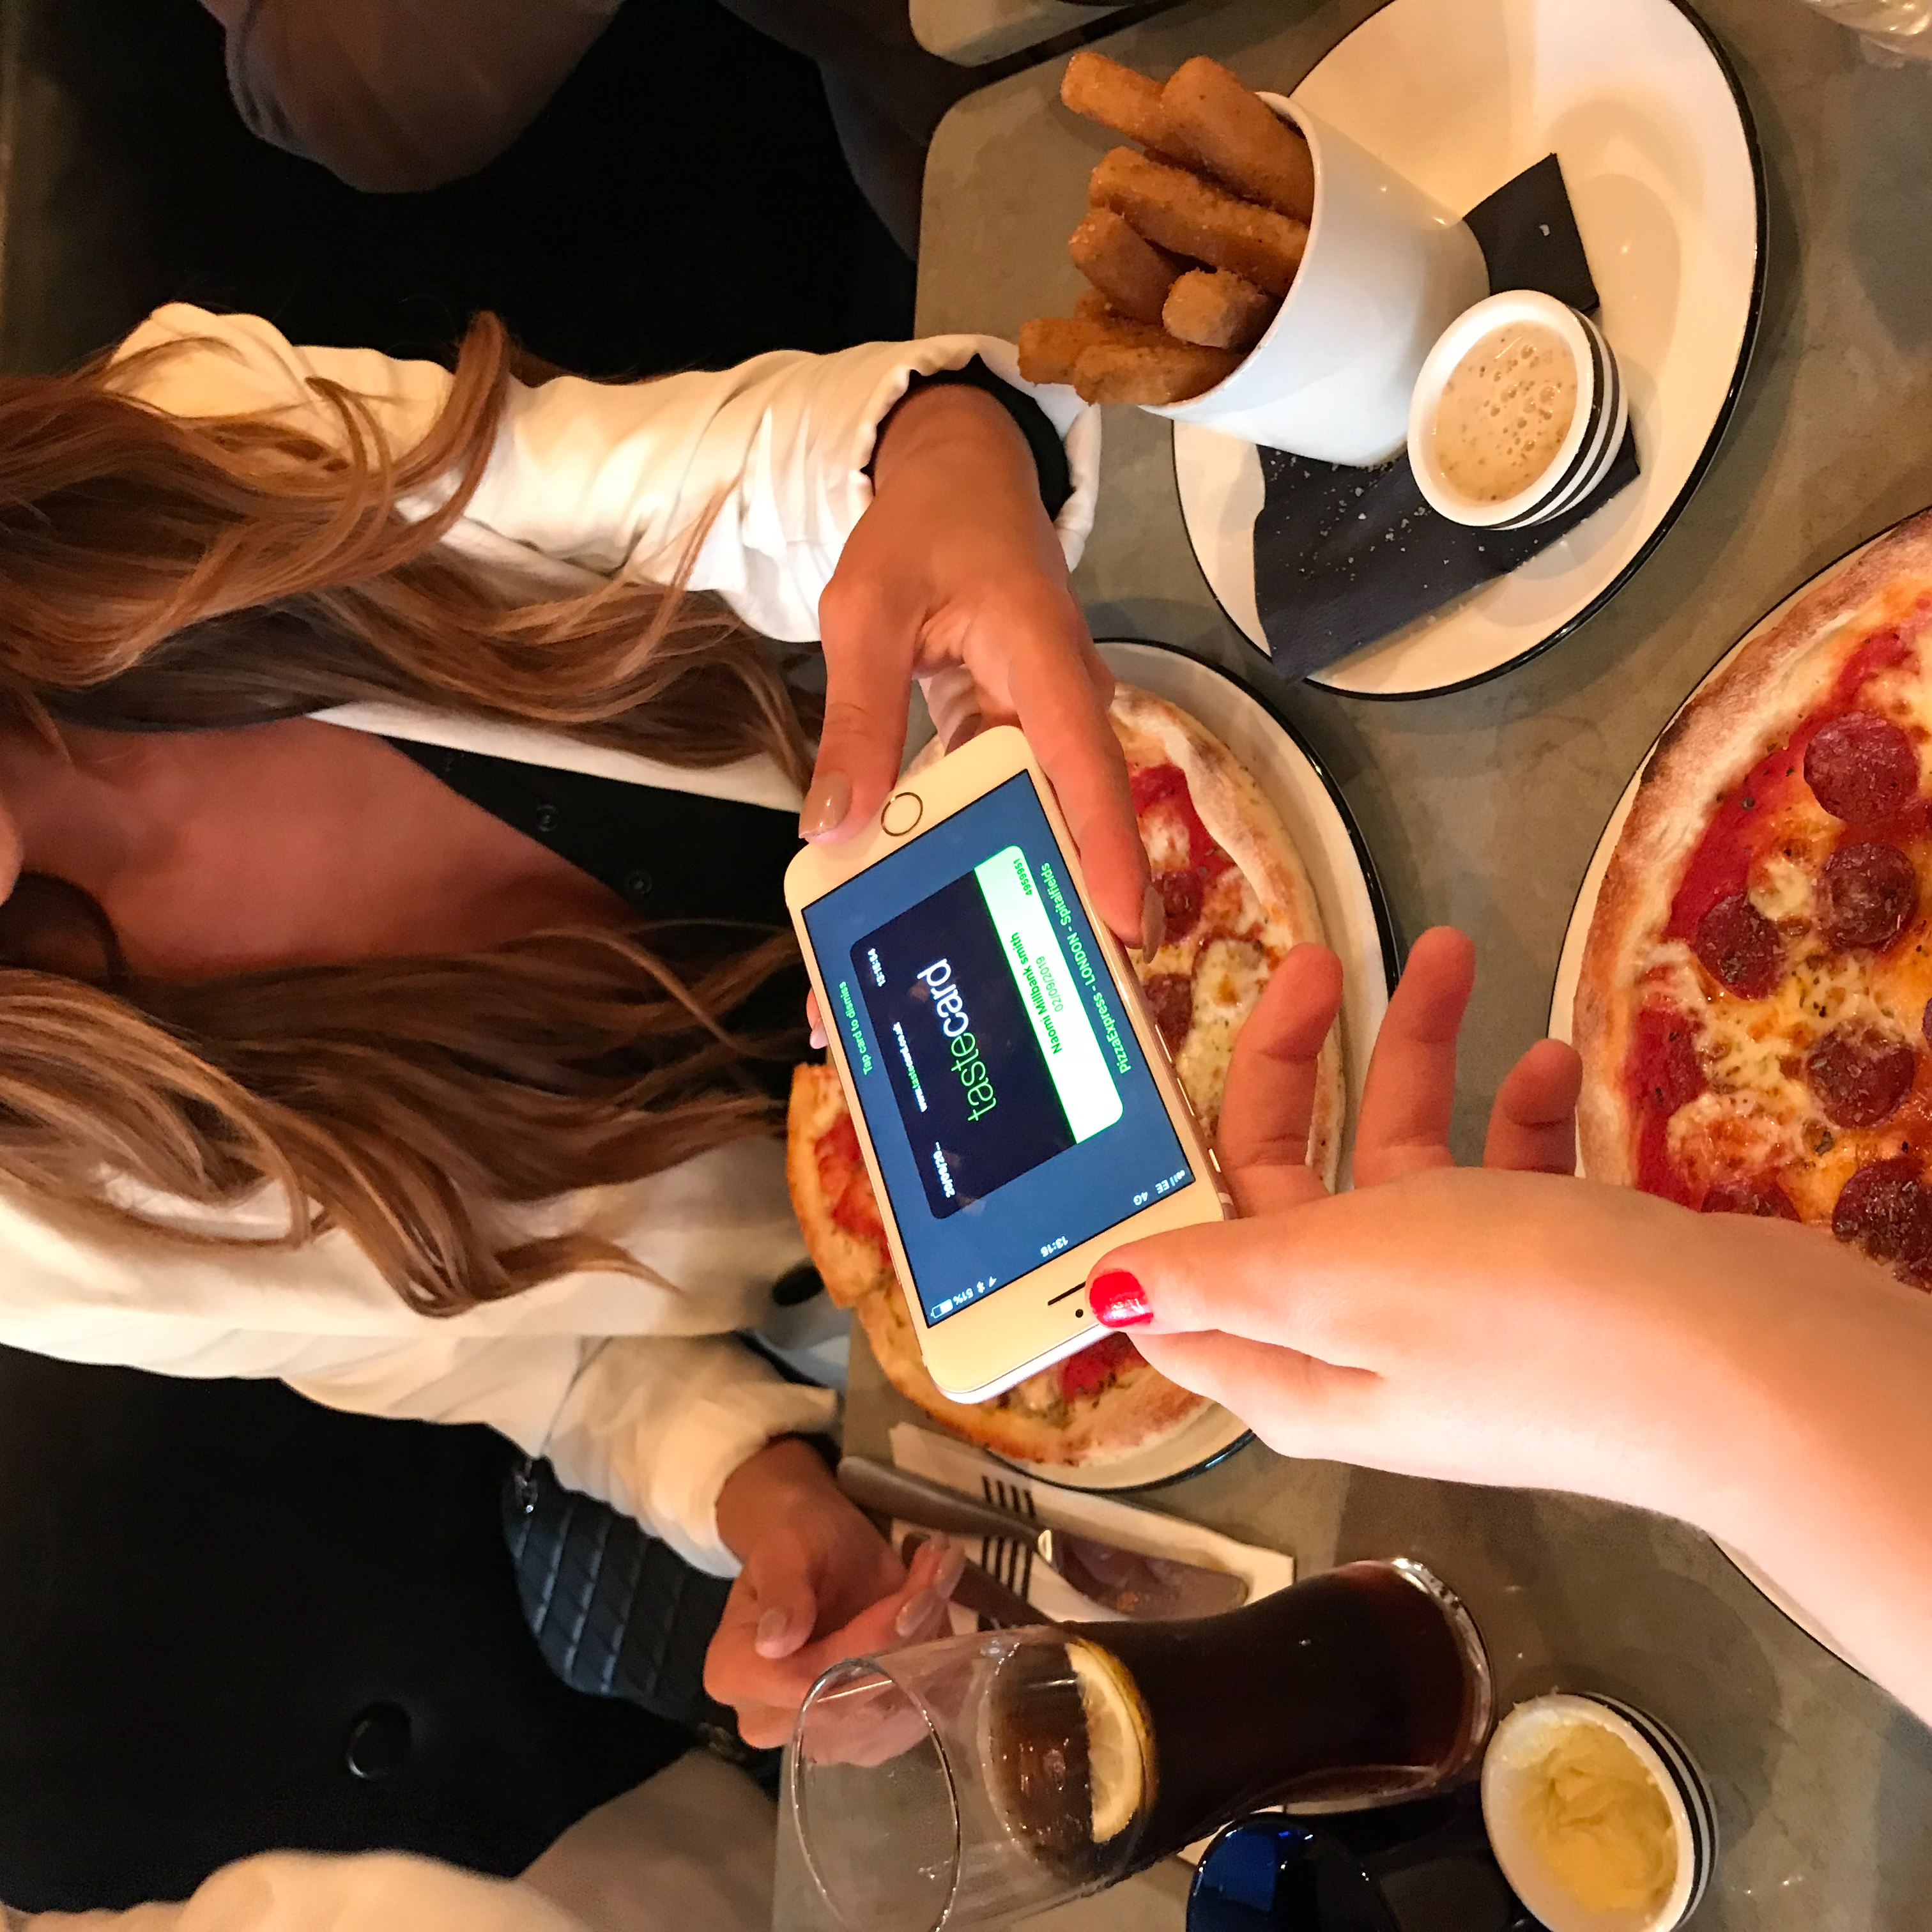 Girly Lunch At Pizza Express With Tastecard